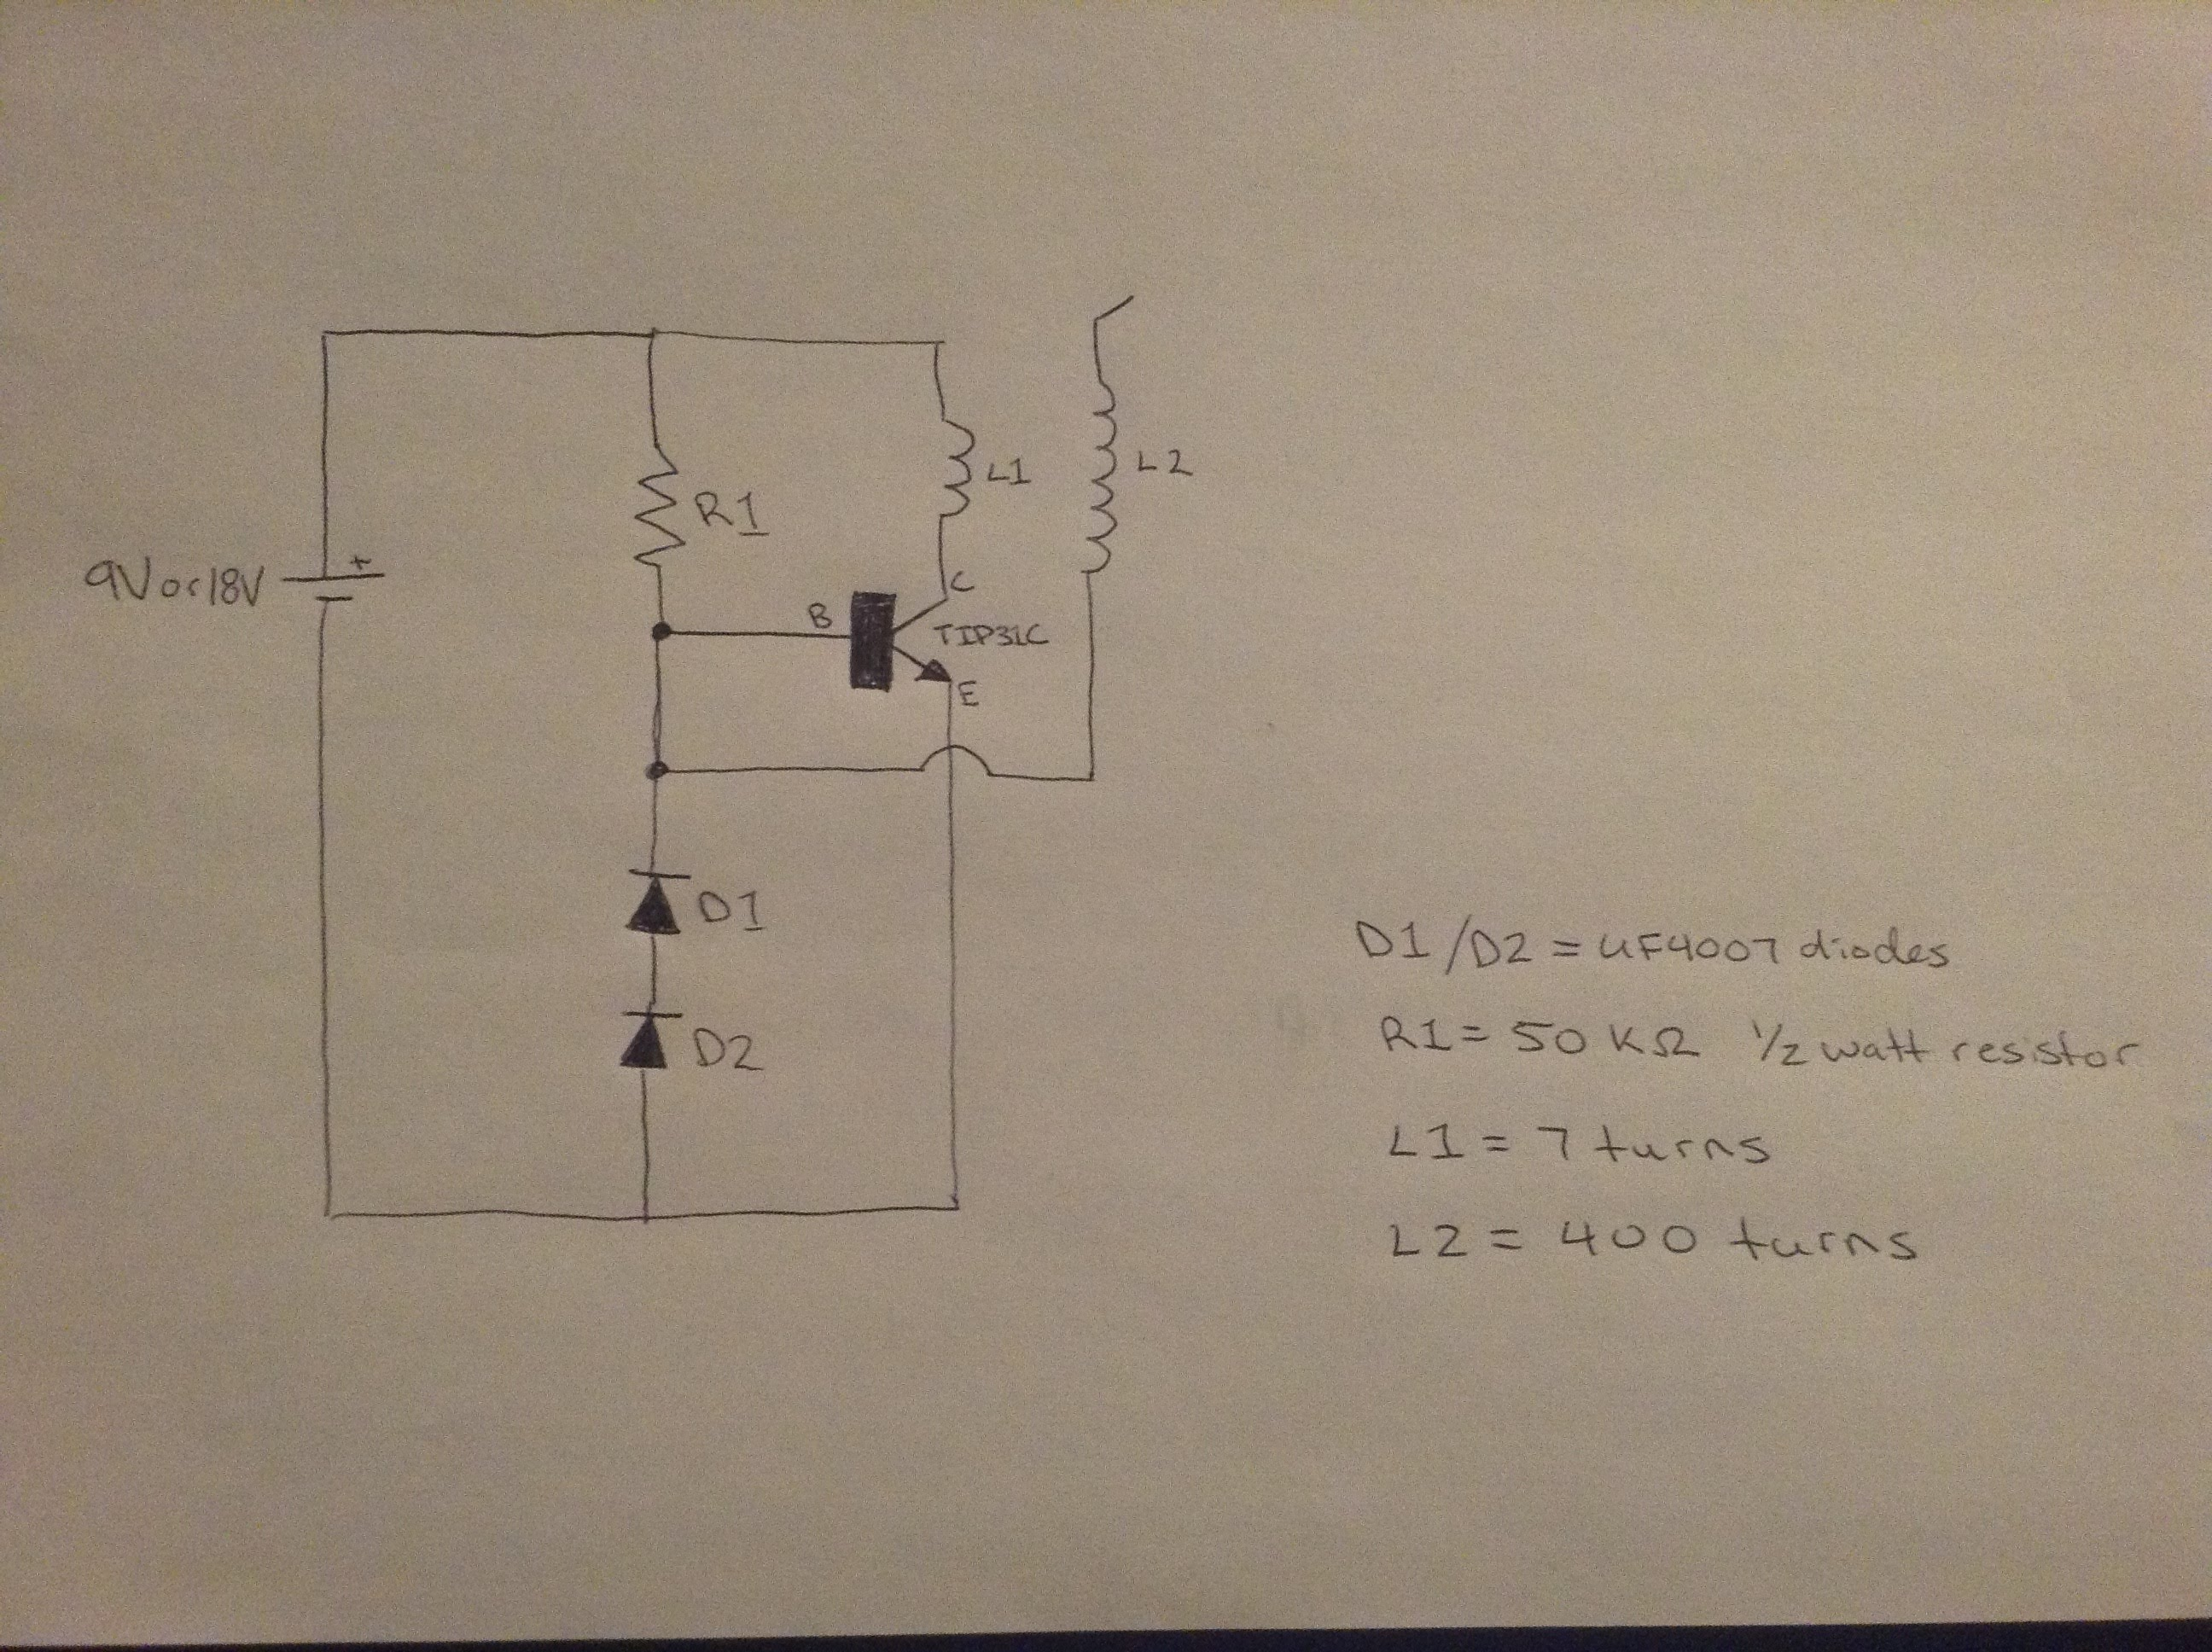 Exciter Circuit Diagram Car Fuse Box Wiring Simple Ks2 Images Gallery